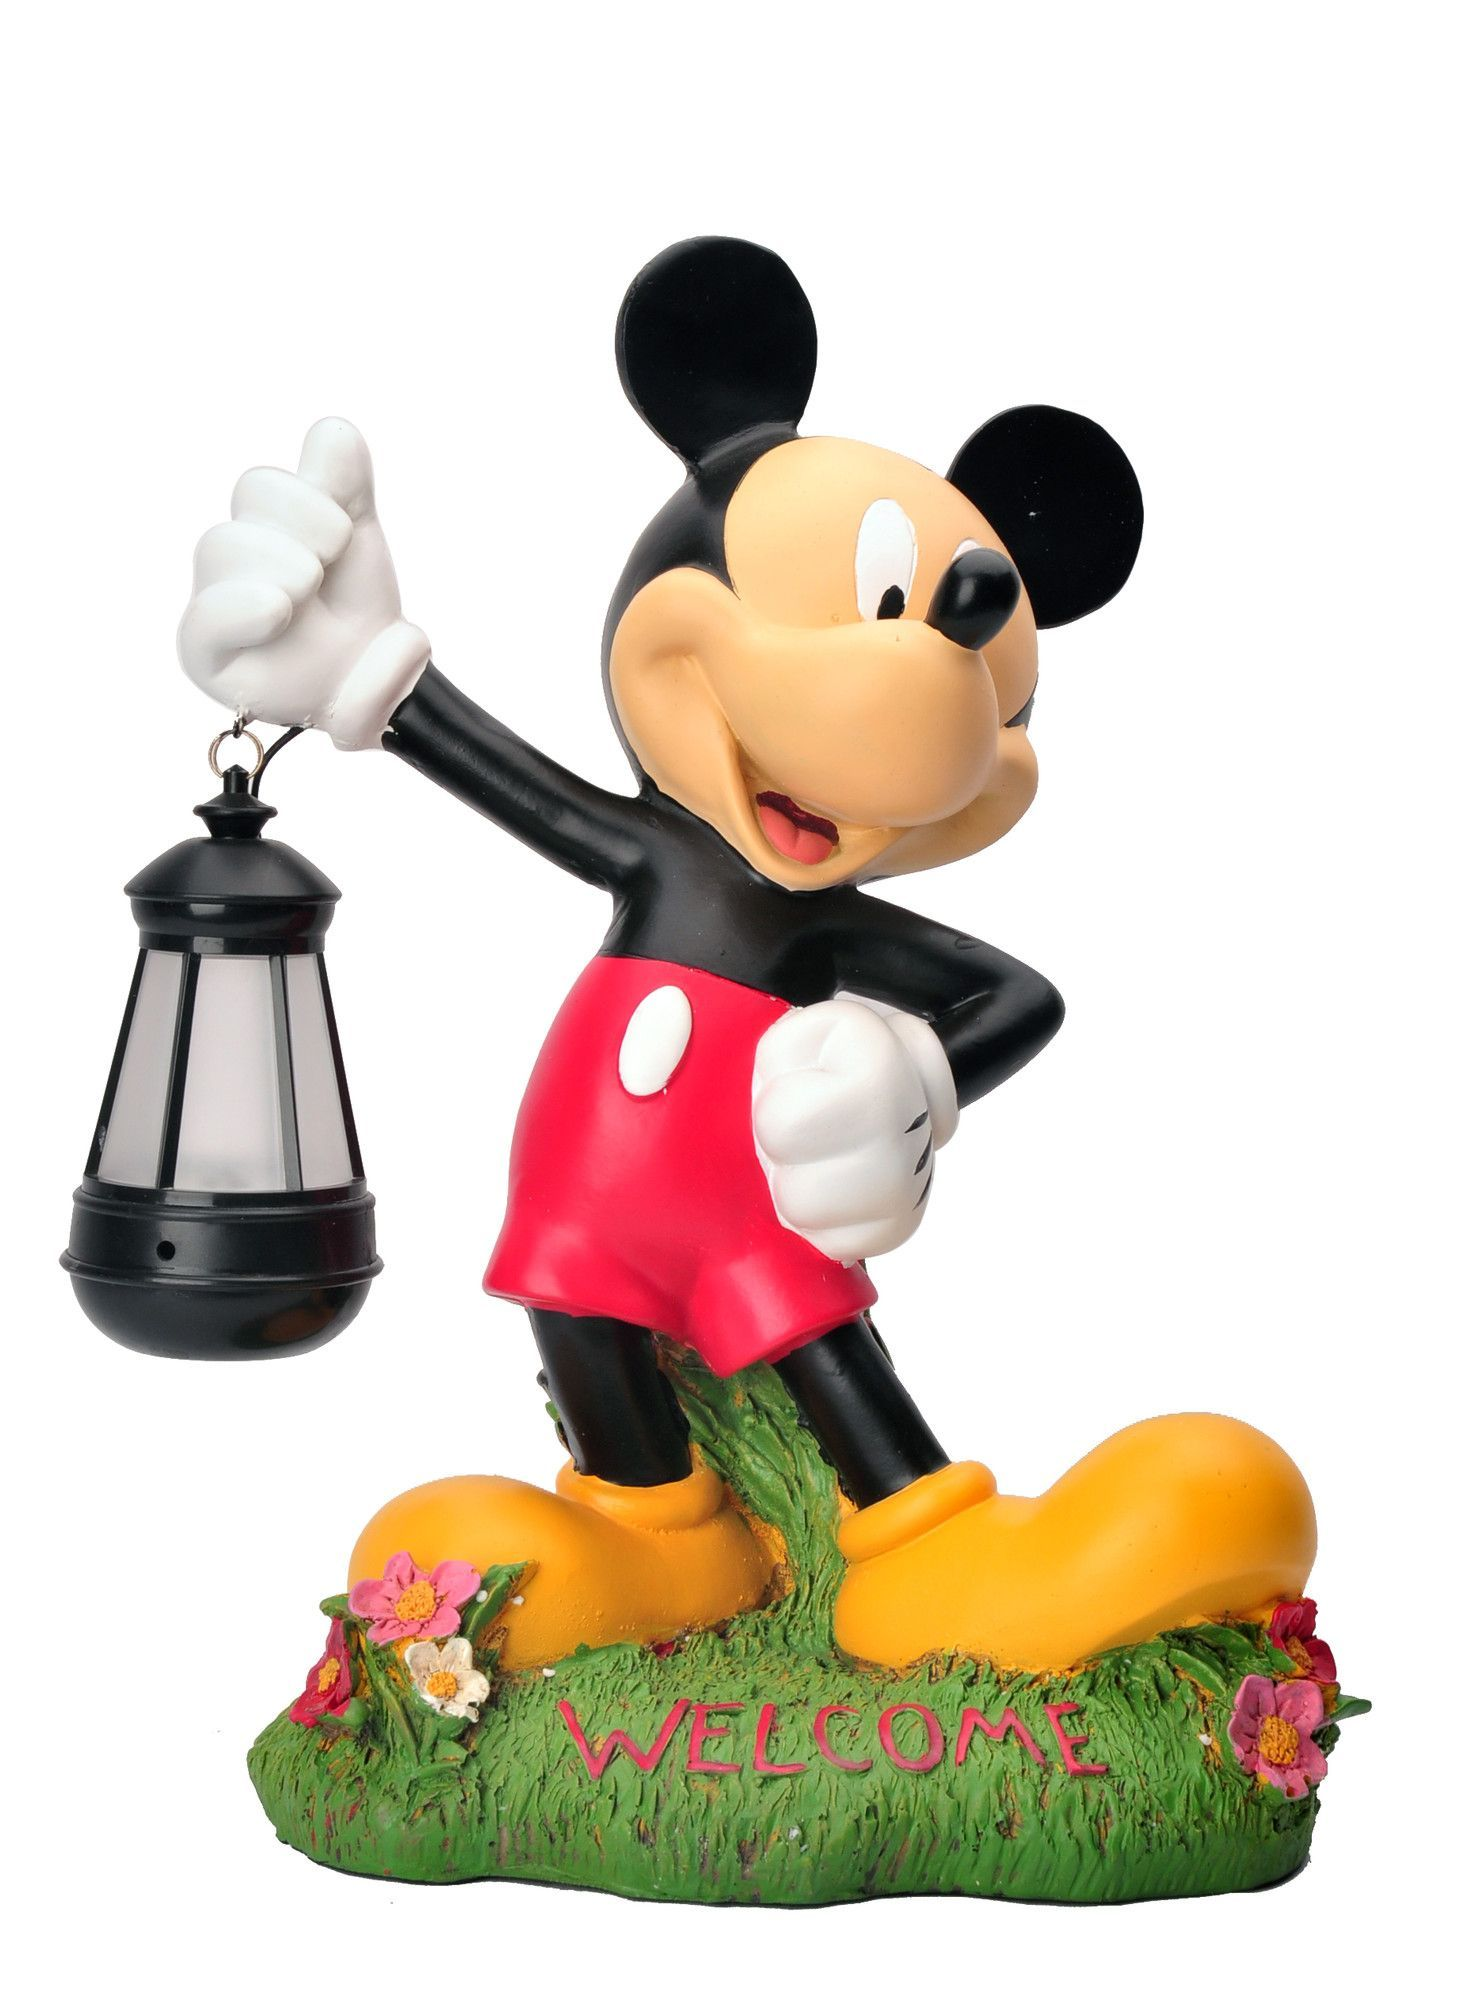 Disney Garden Led Mickey Mouse Statue Products